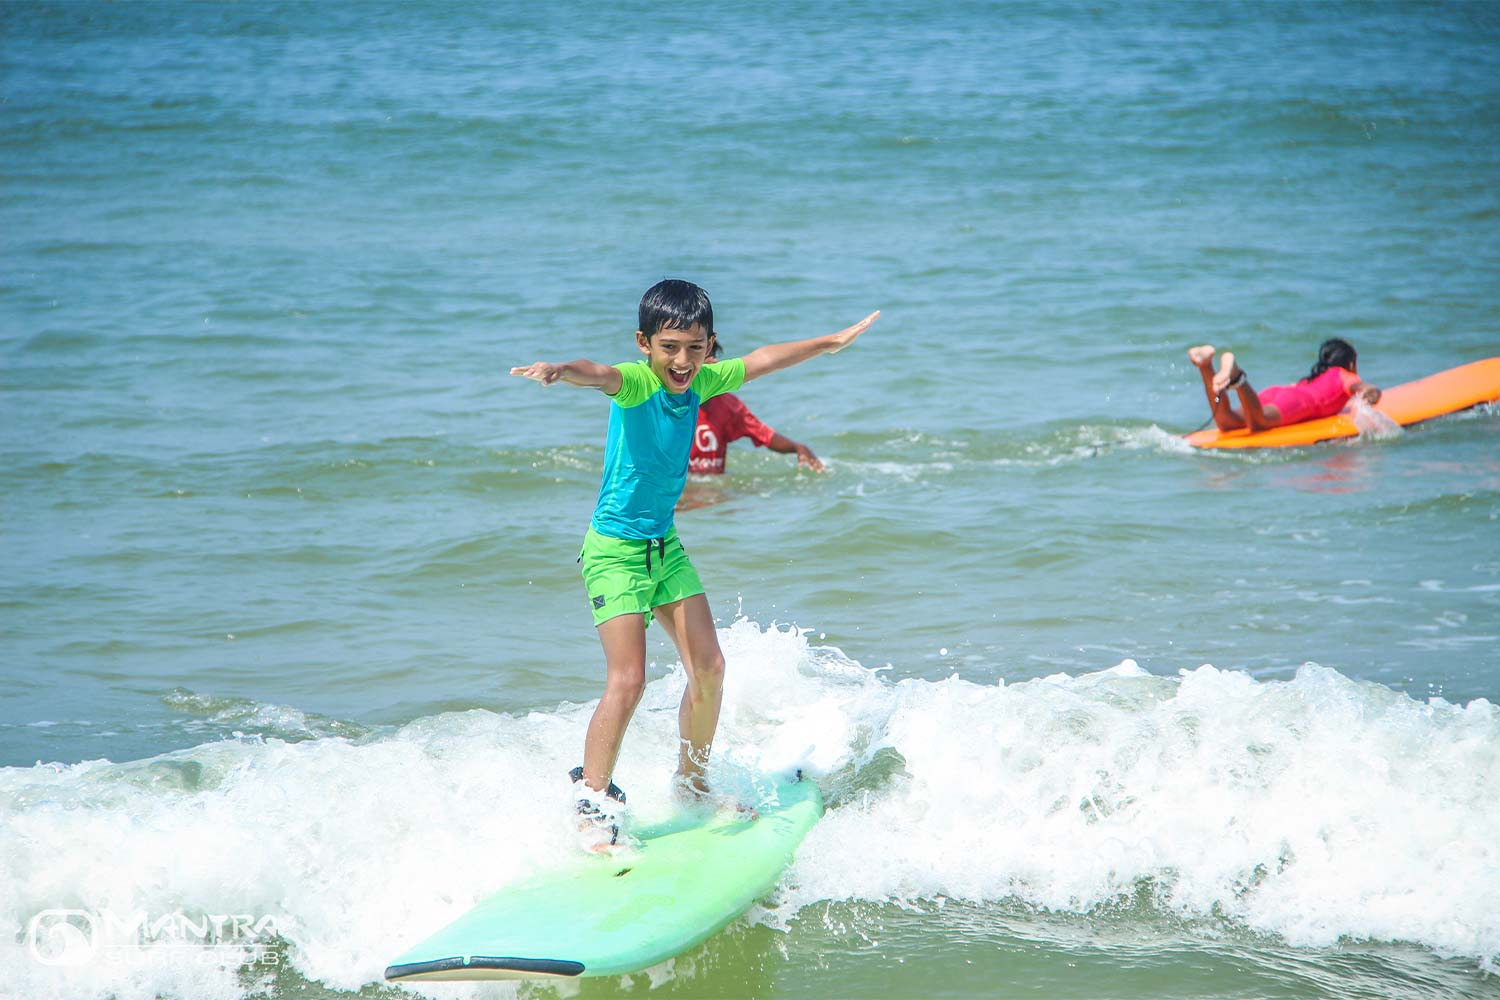 Surfing India - Mantra Surf Club - Surf Course